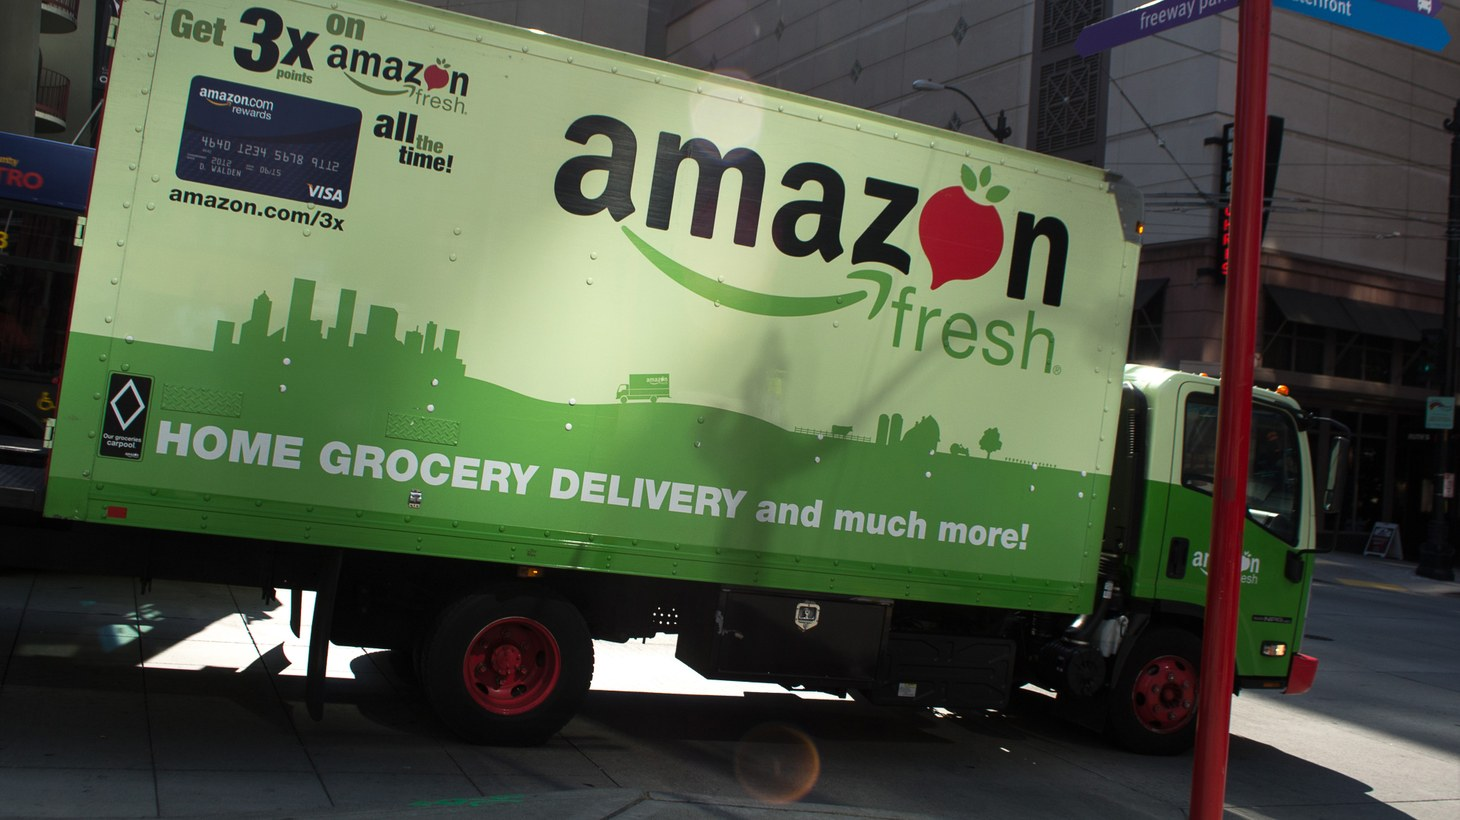 A delivery truck from Amazon Fresh.